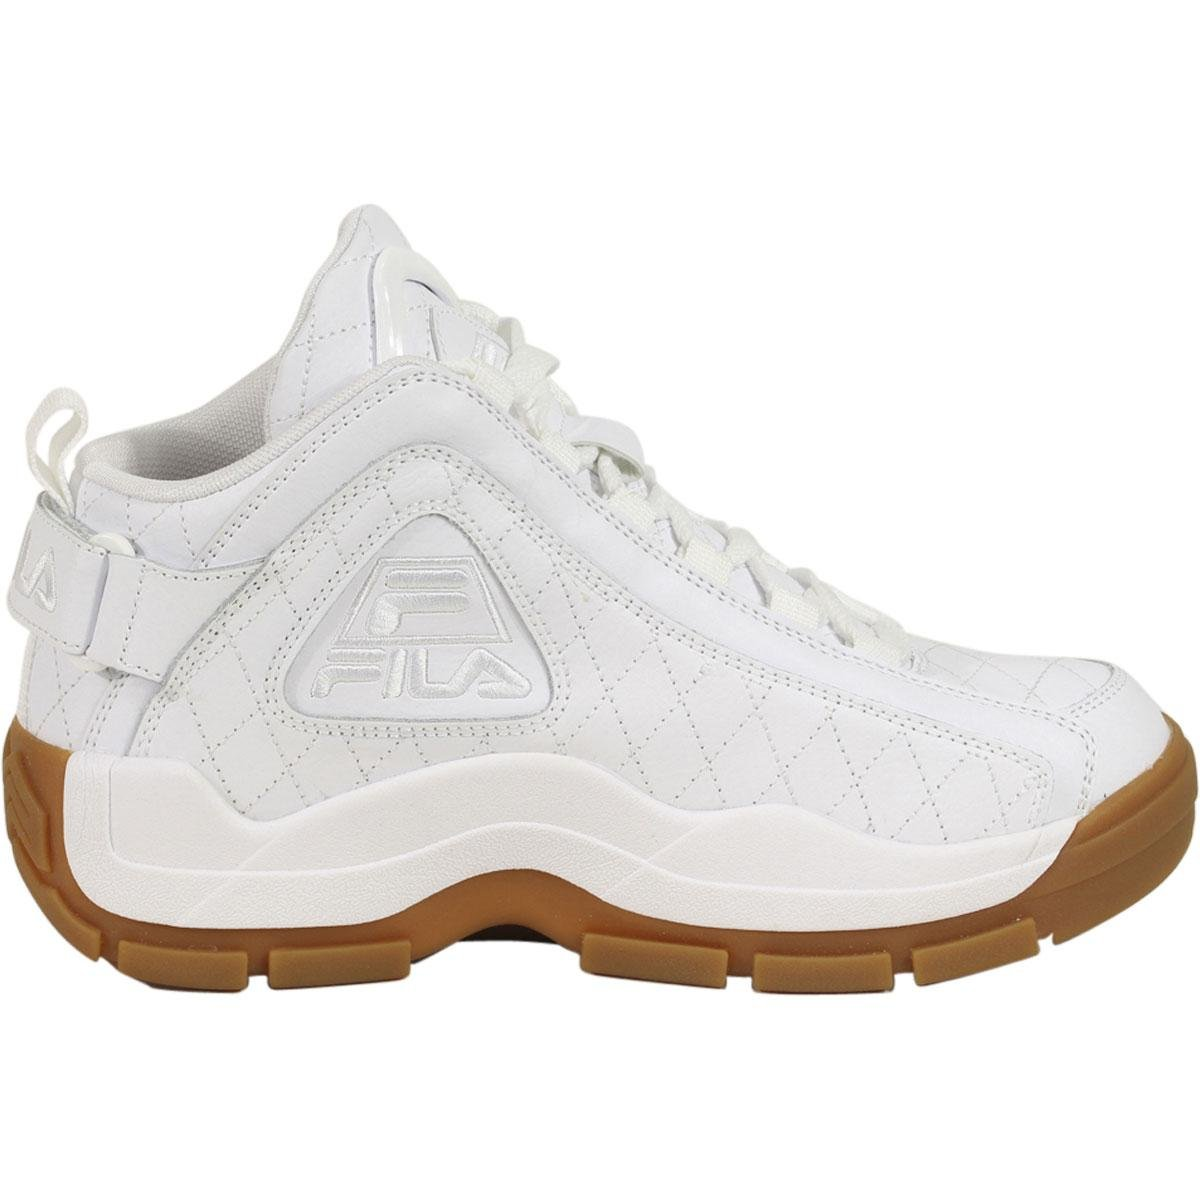 Amazon.com | Fila Mens 96 Quilted White Gum Hightop Basketball Shoes Sneakers | Basketball